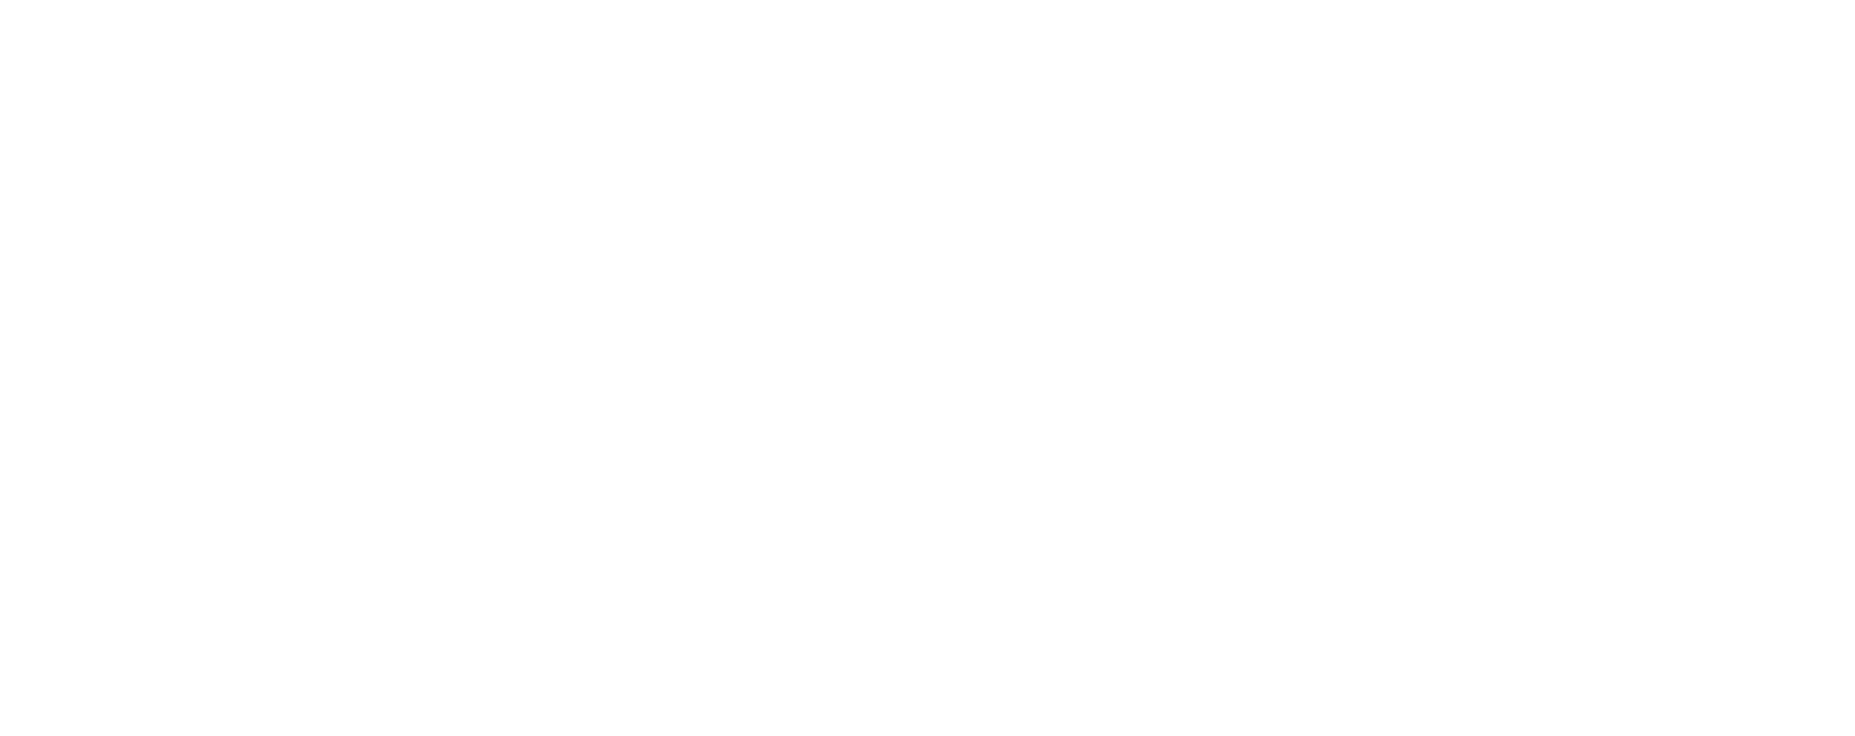 time-out-logo-png.png